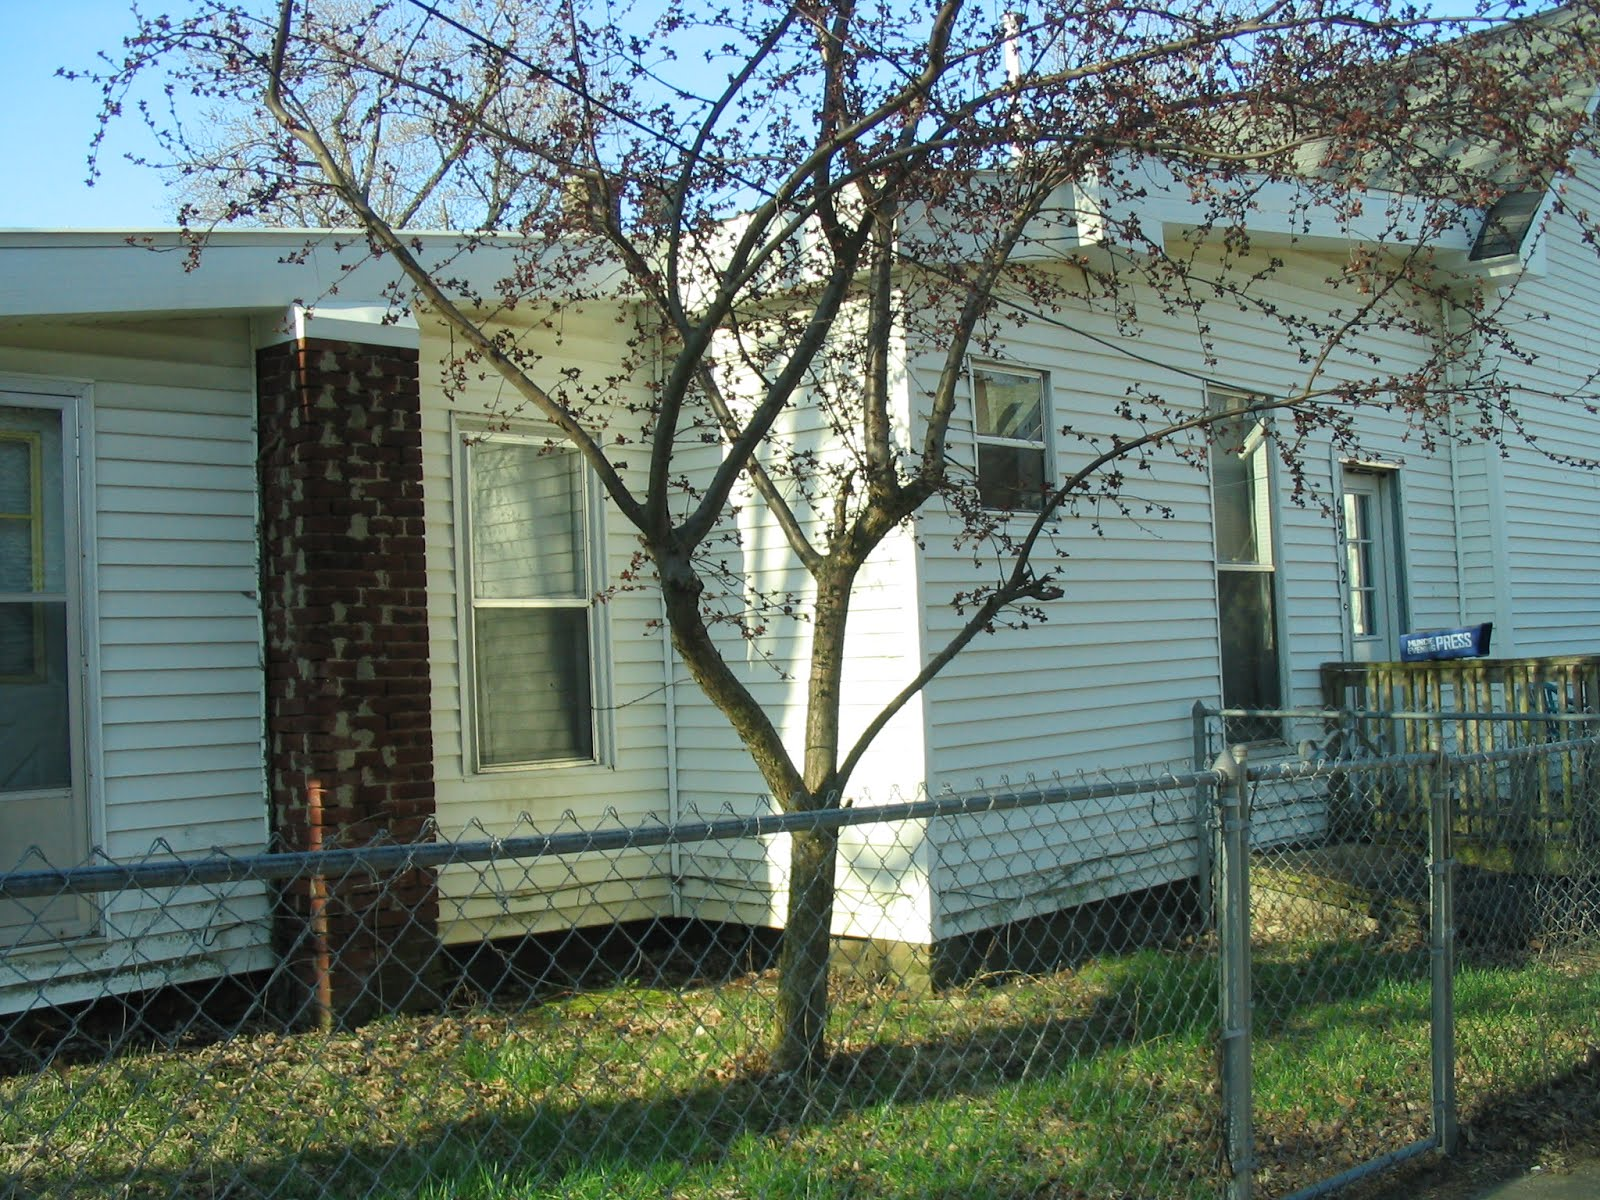 602.5 S. Council 2 BR AVAIL NOW